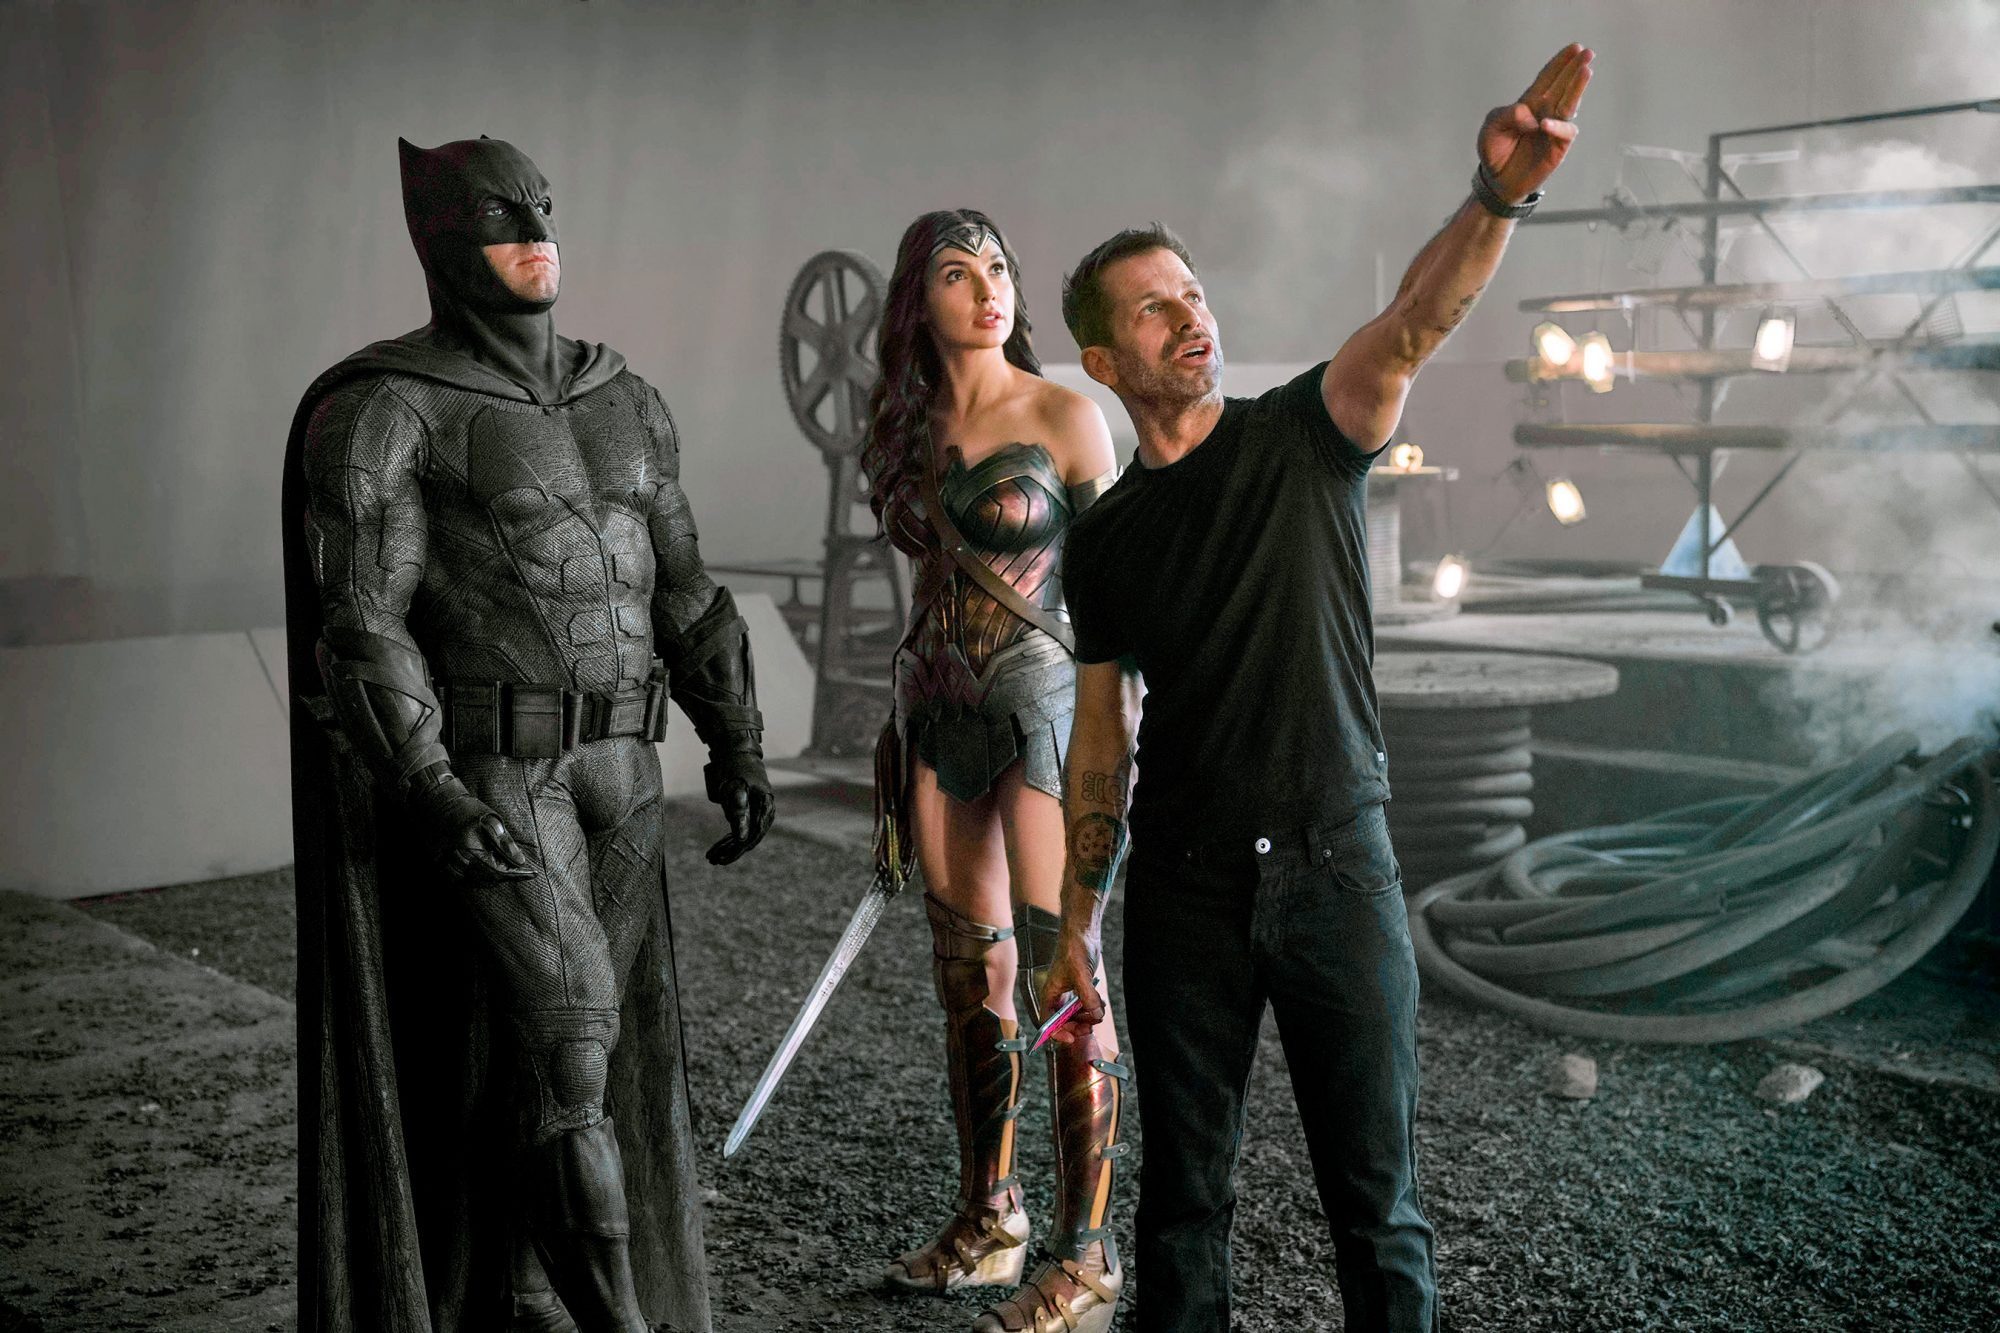 Zack Snyder responds to Scorsese's criticism of Marvel movies